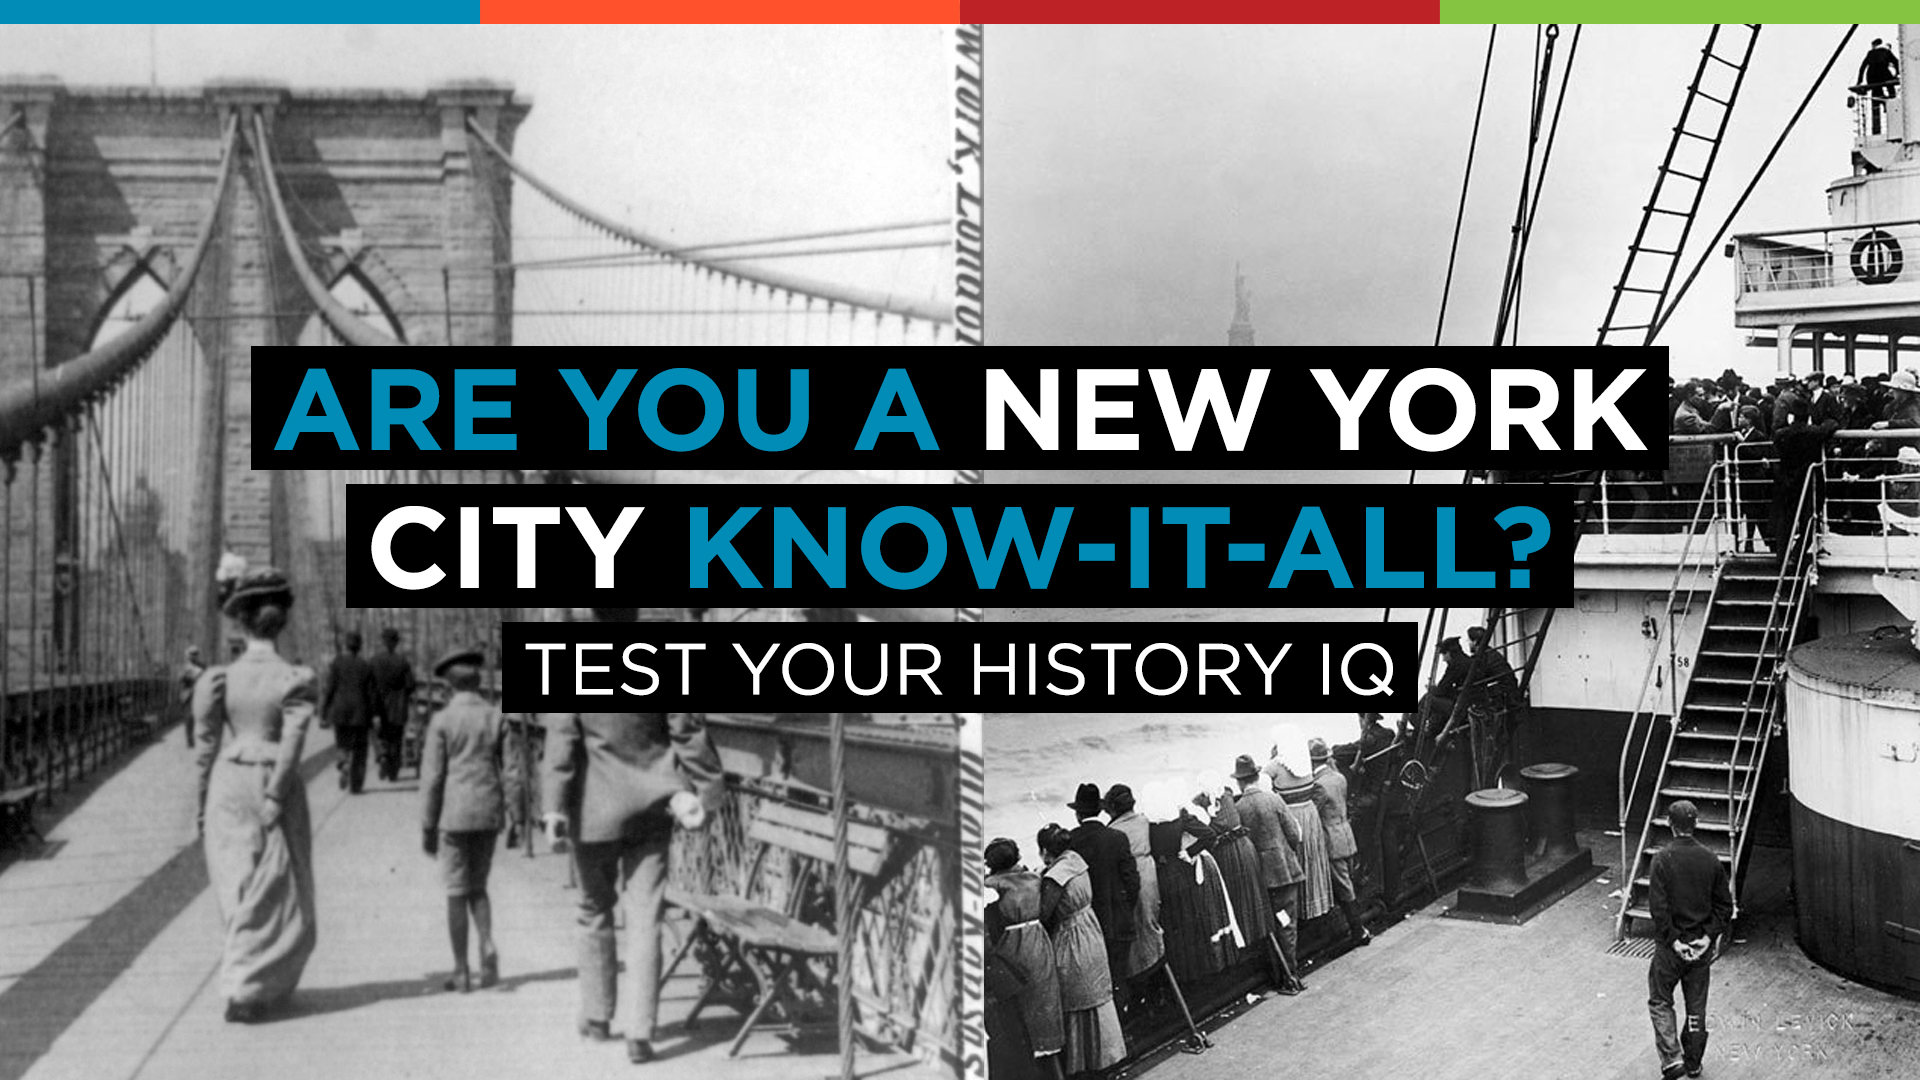 Nyc History Quiz Are You A New York City Know It All